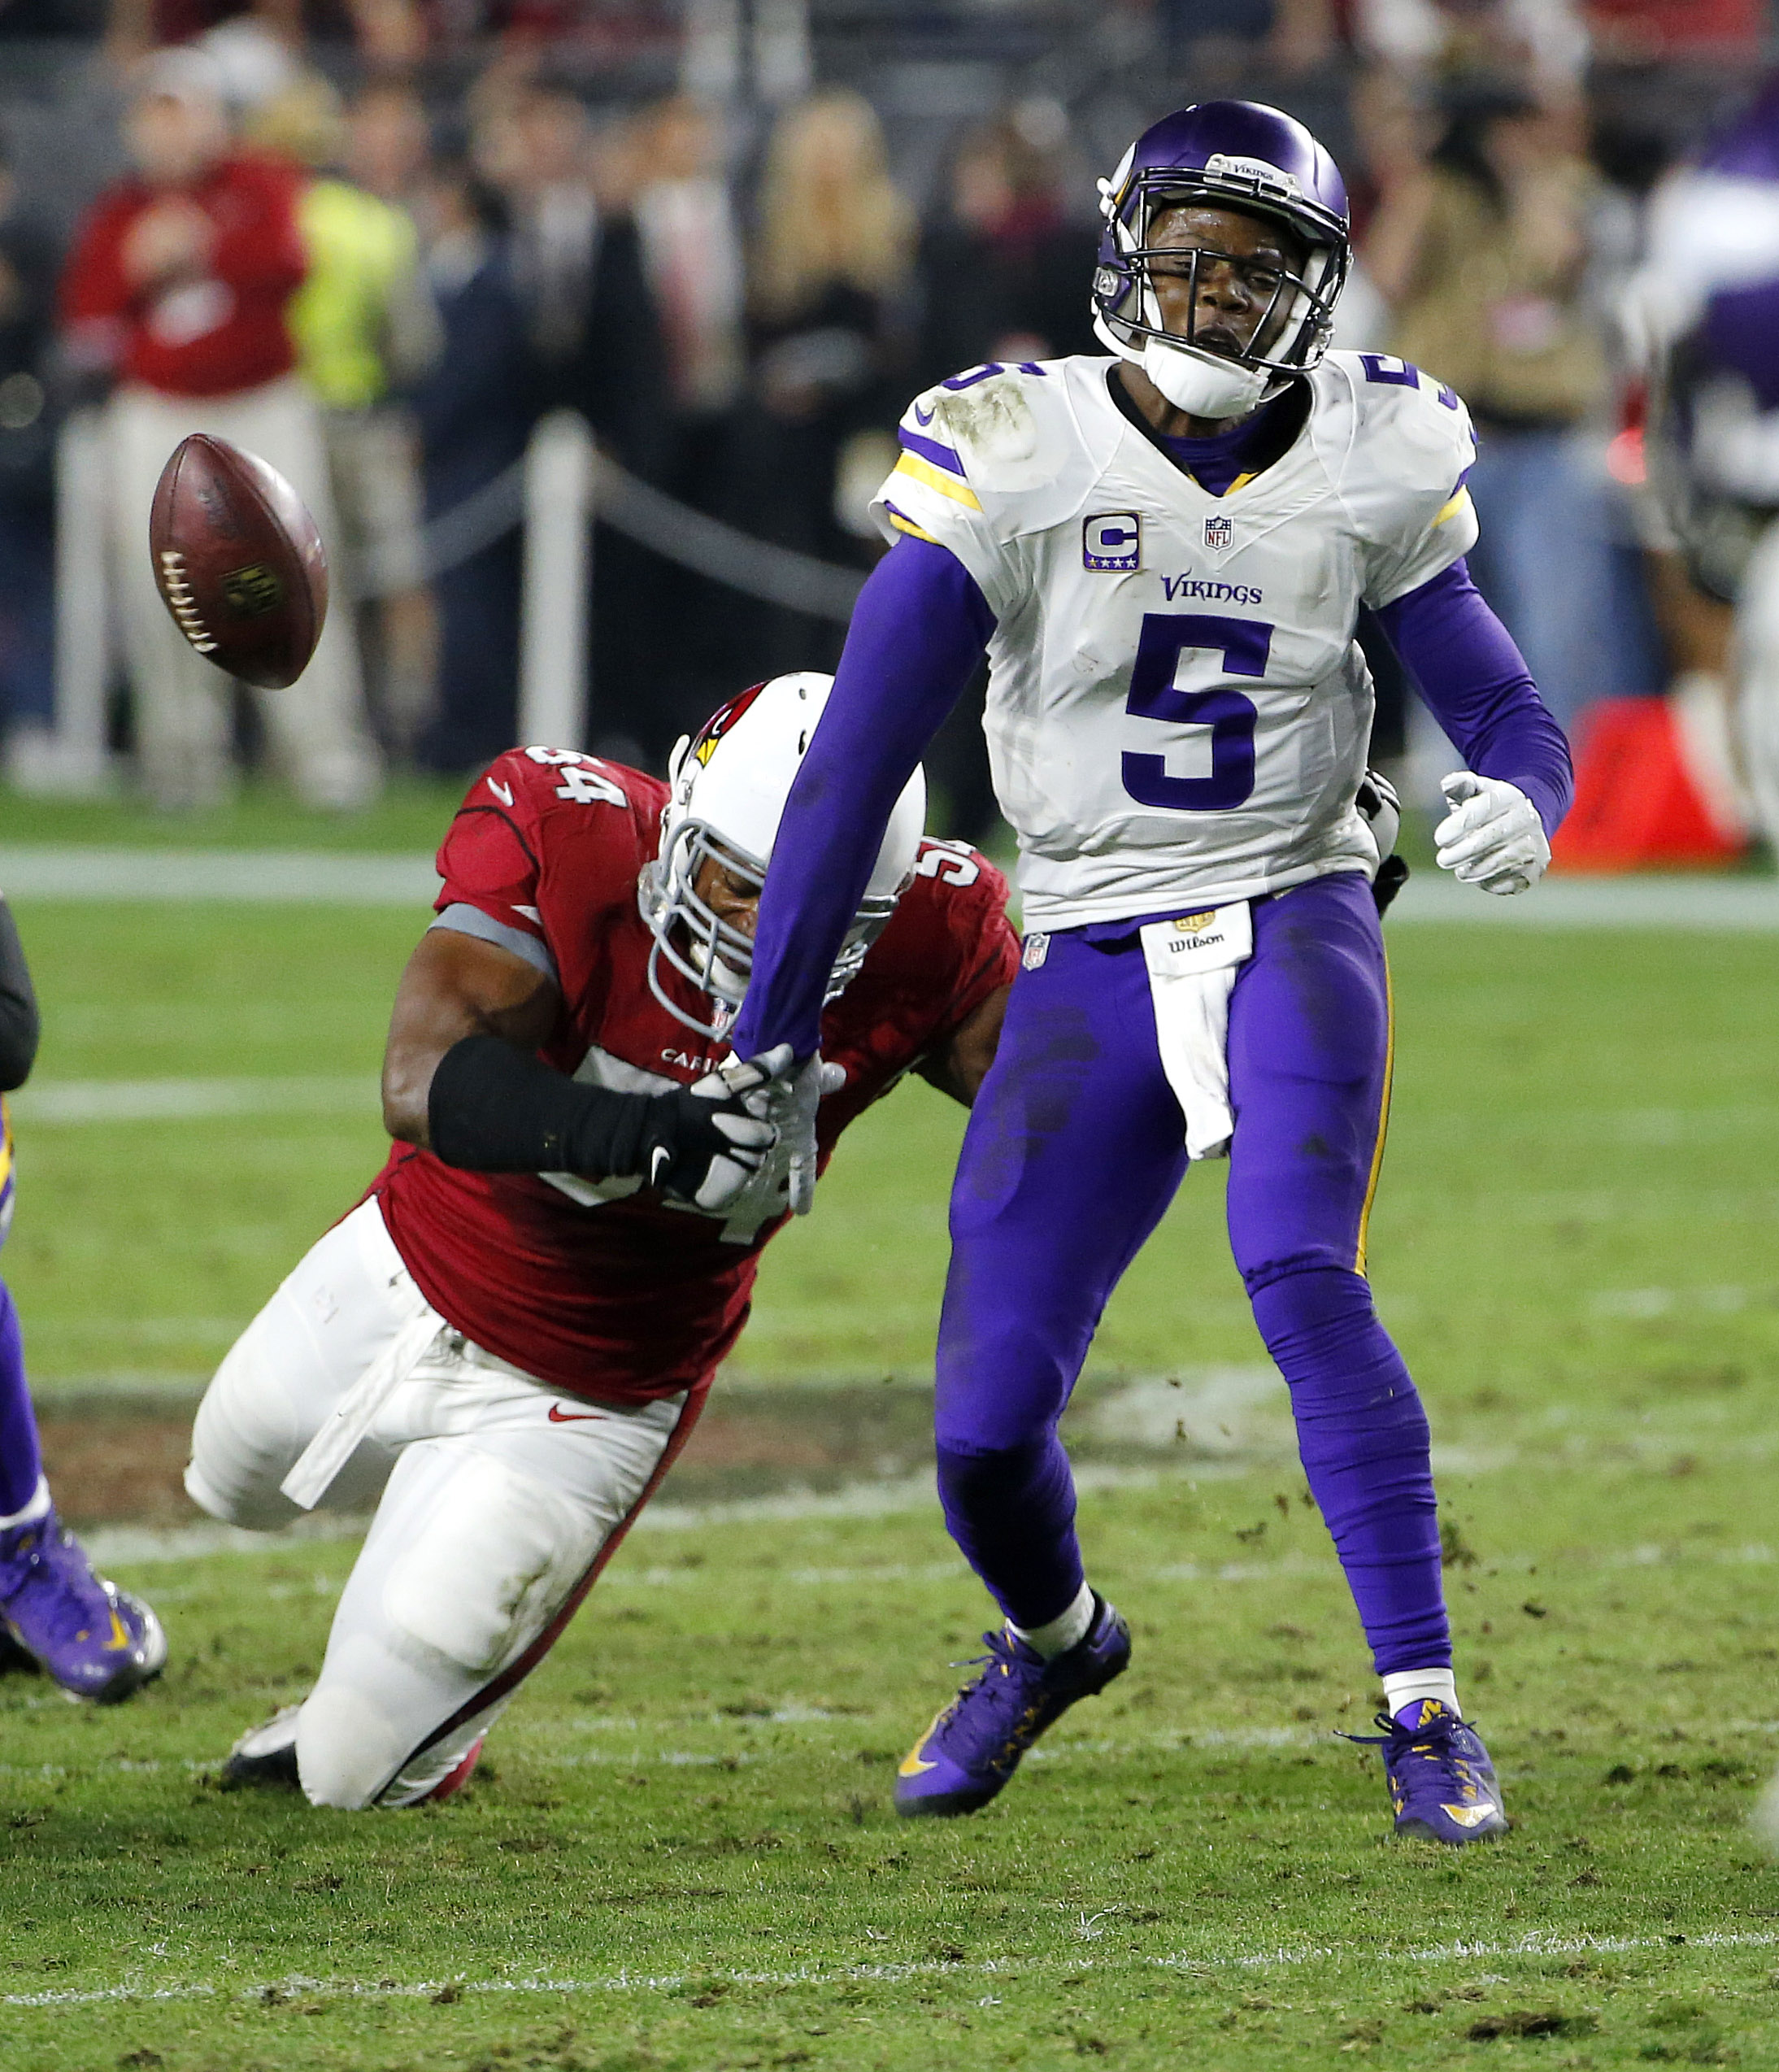 Arizona Cardinals inside linebacker Dwight Freeney (54) forces Minnesota Vikings quarterback Teddy Bridgewater (5) to fumble during the second half of an NFL football game, Thursday, Dec. 10, 2015, in Glendale, Ariz. The Cardinals recovered the ball to se